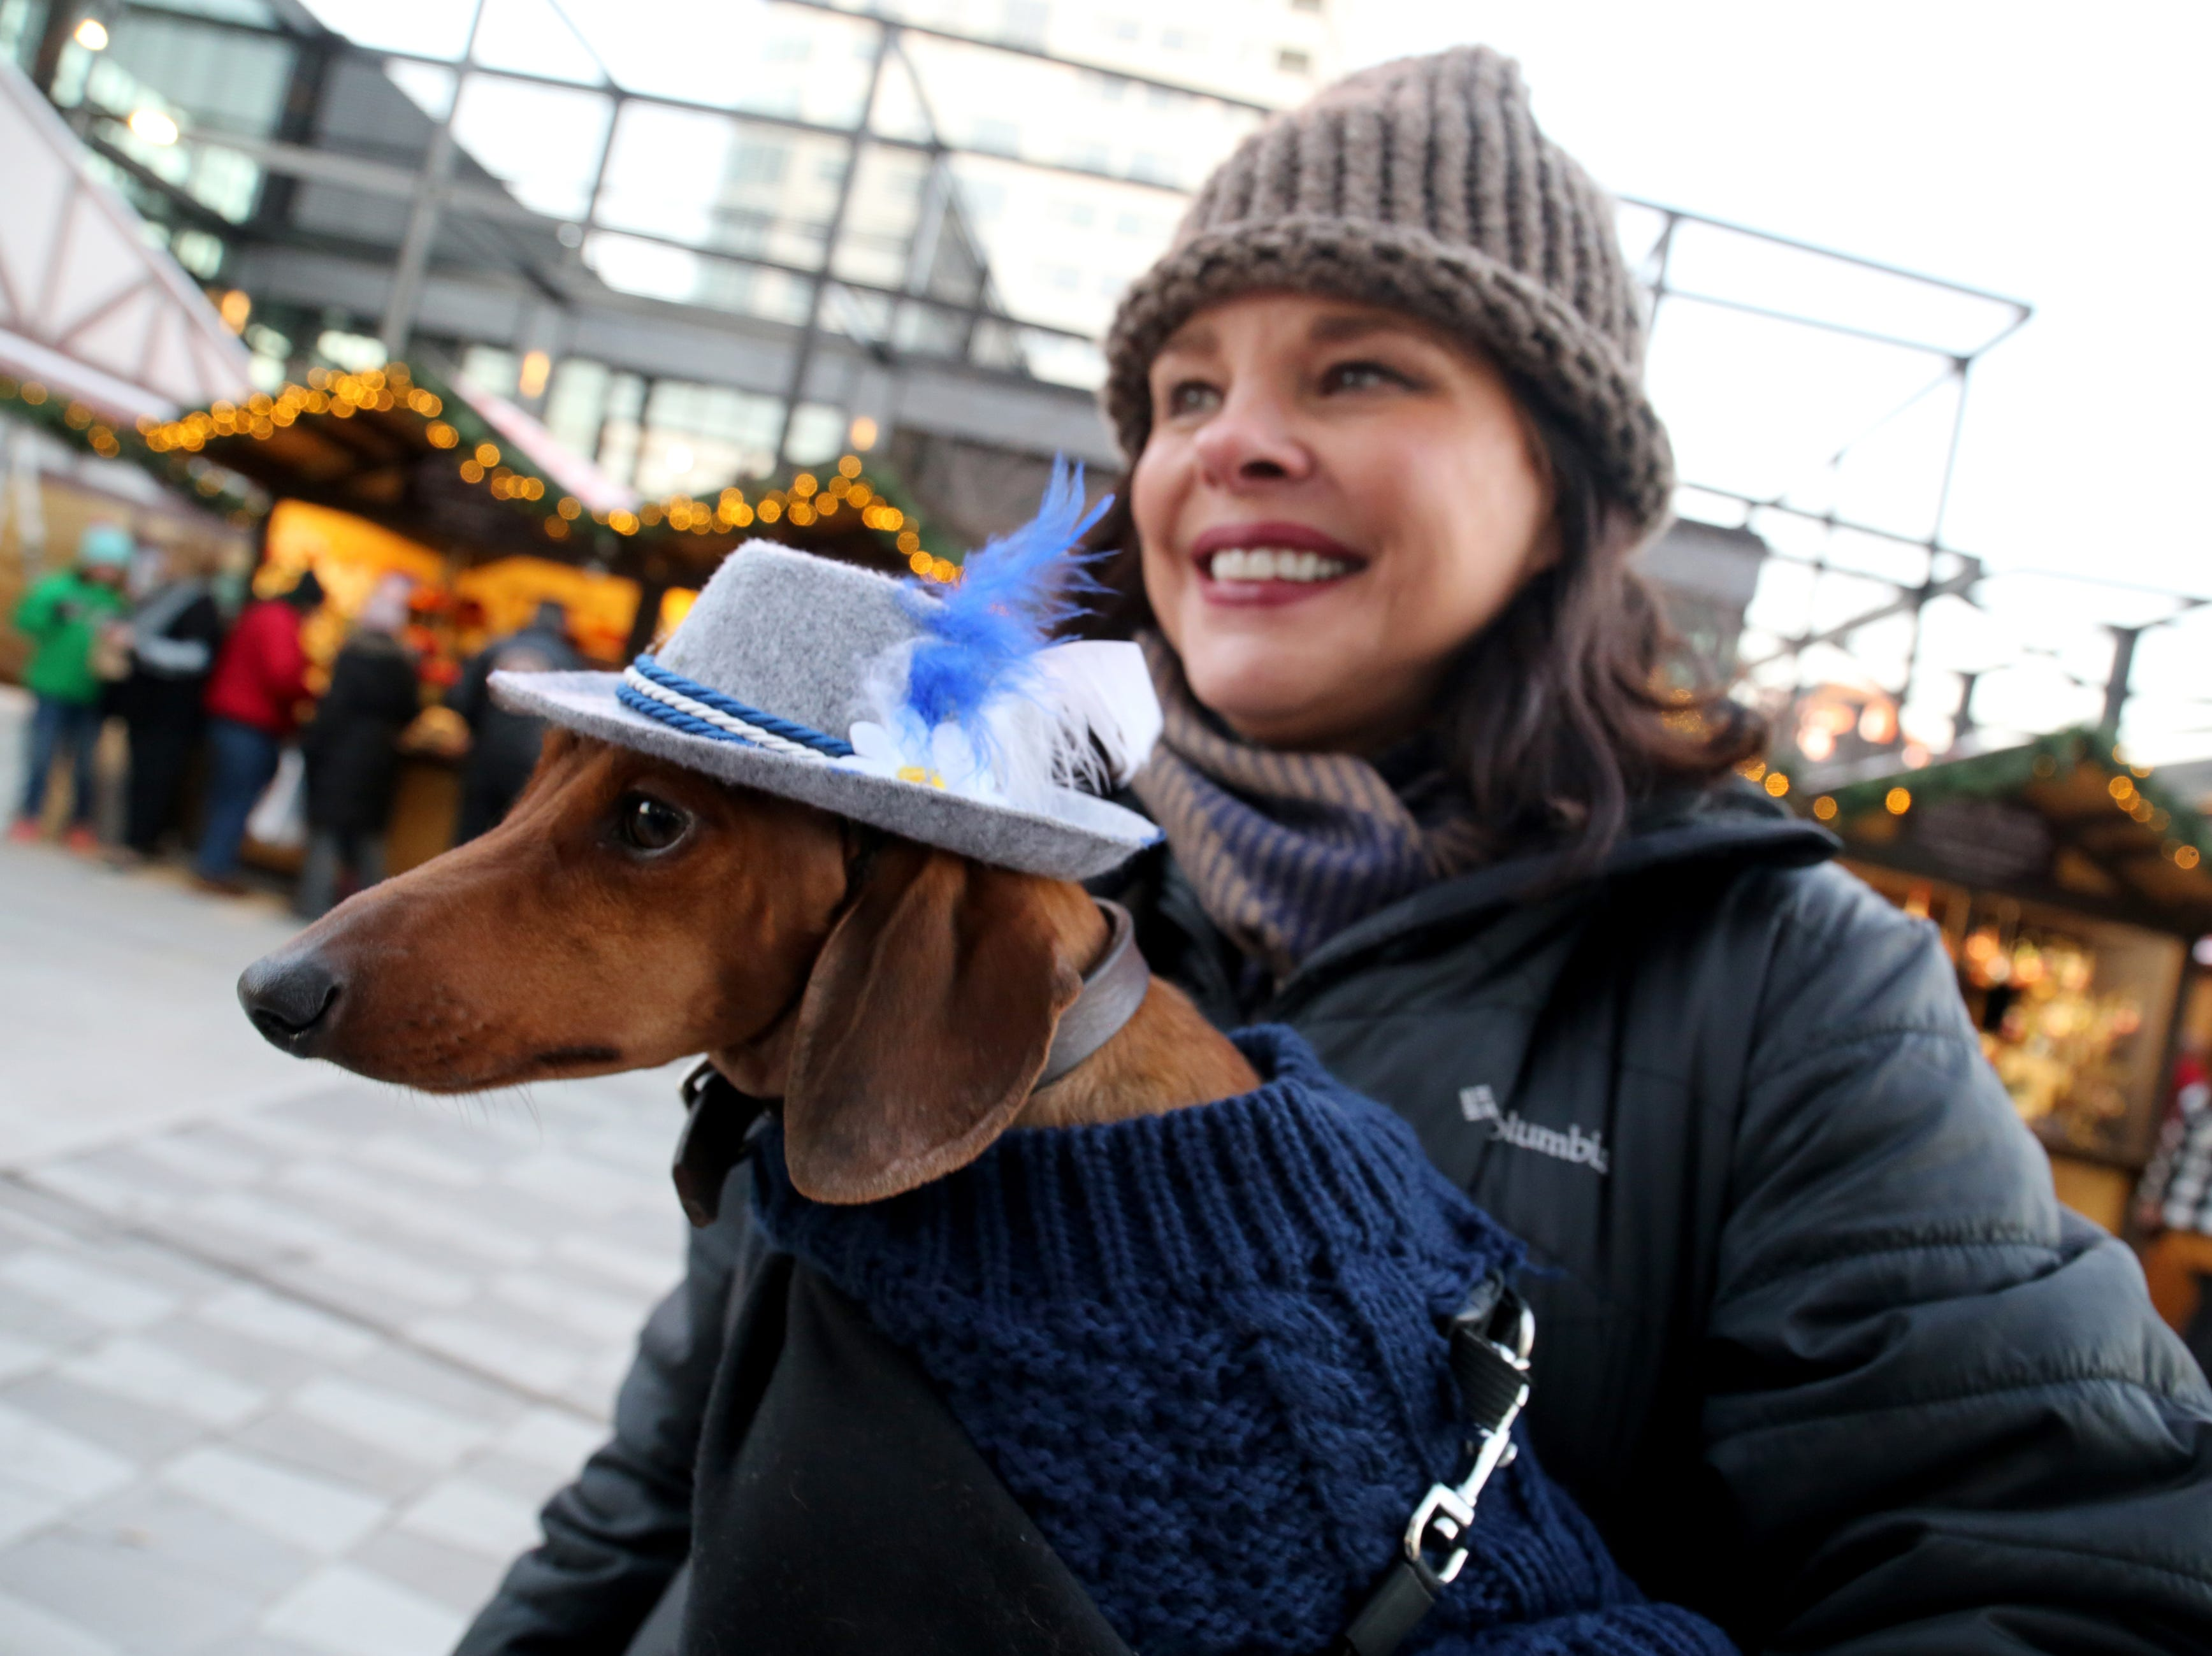 Nan Bonyata, from Lake Geneva, holds Huck, her two-year-old dachshund wearing a traditional German hat.